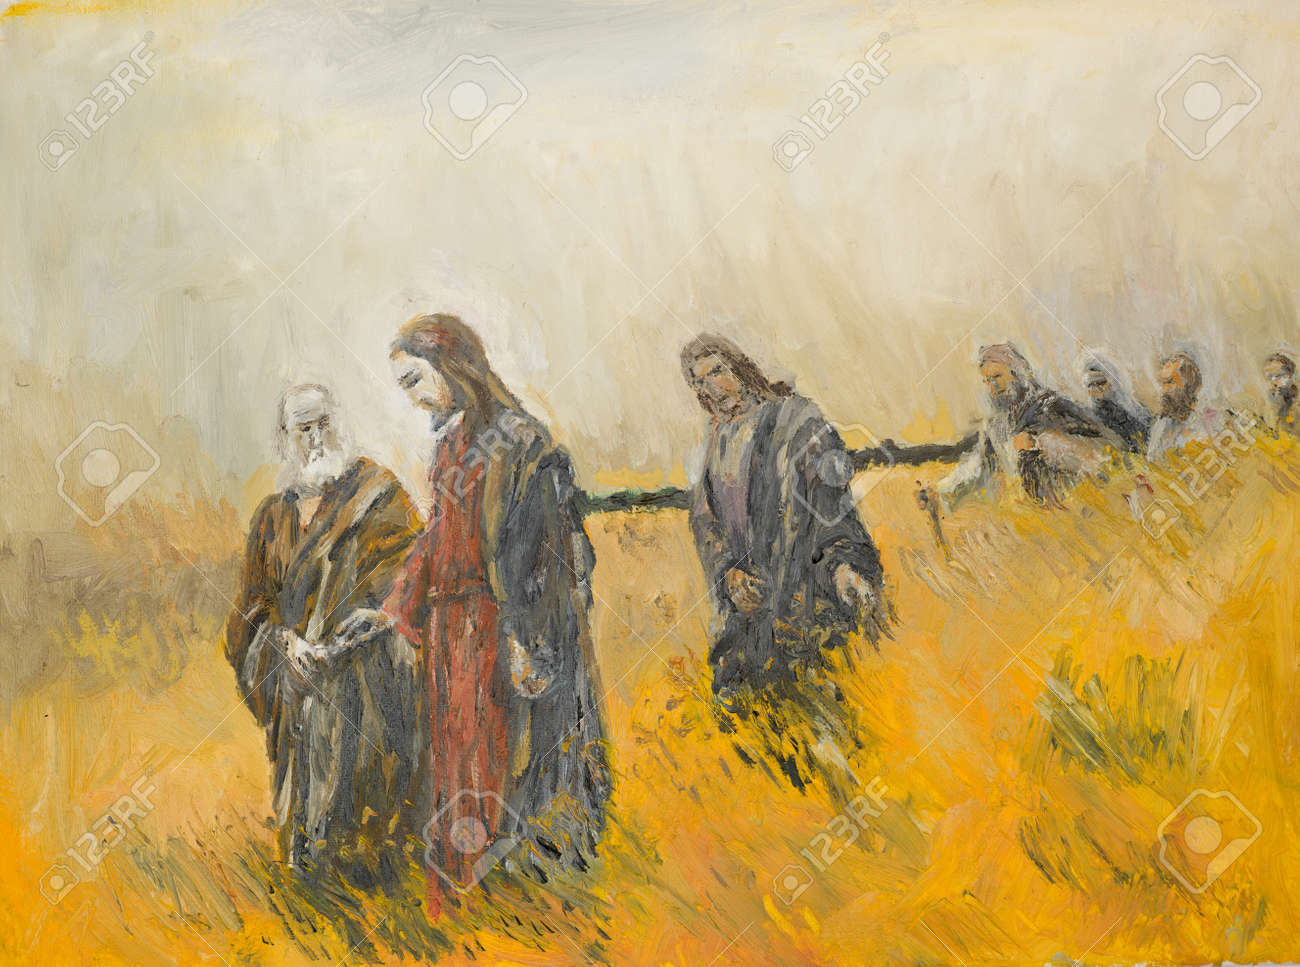 Oil Painting Illustrating A Religious Scene Jesus Christ And